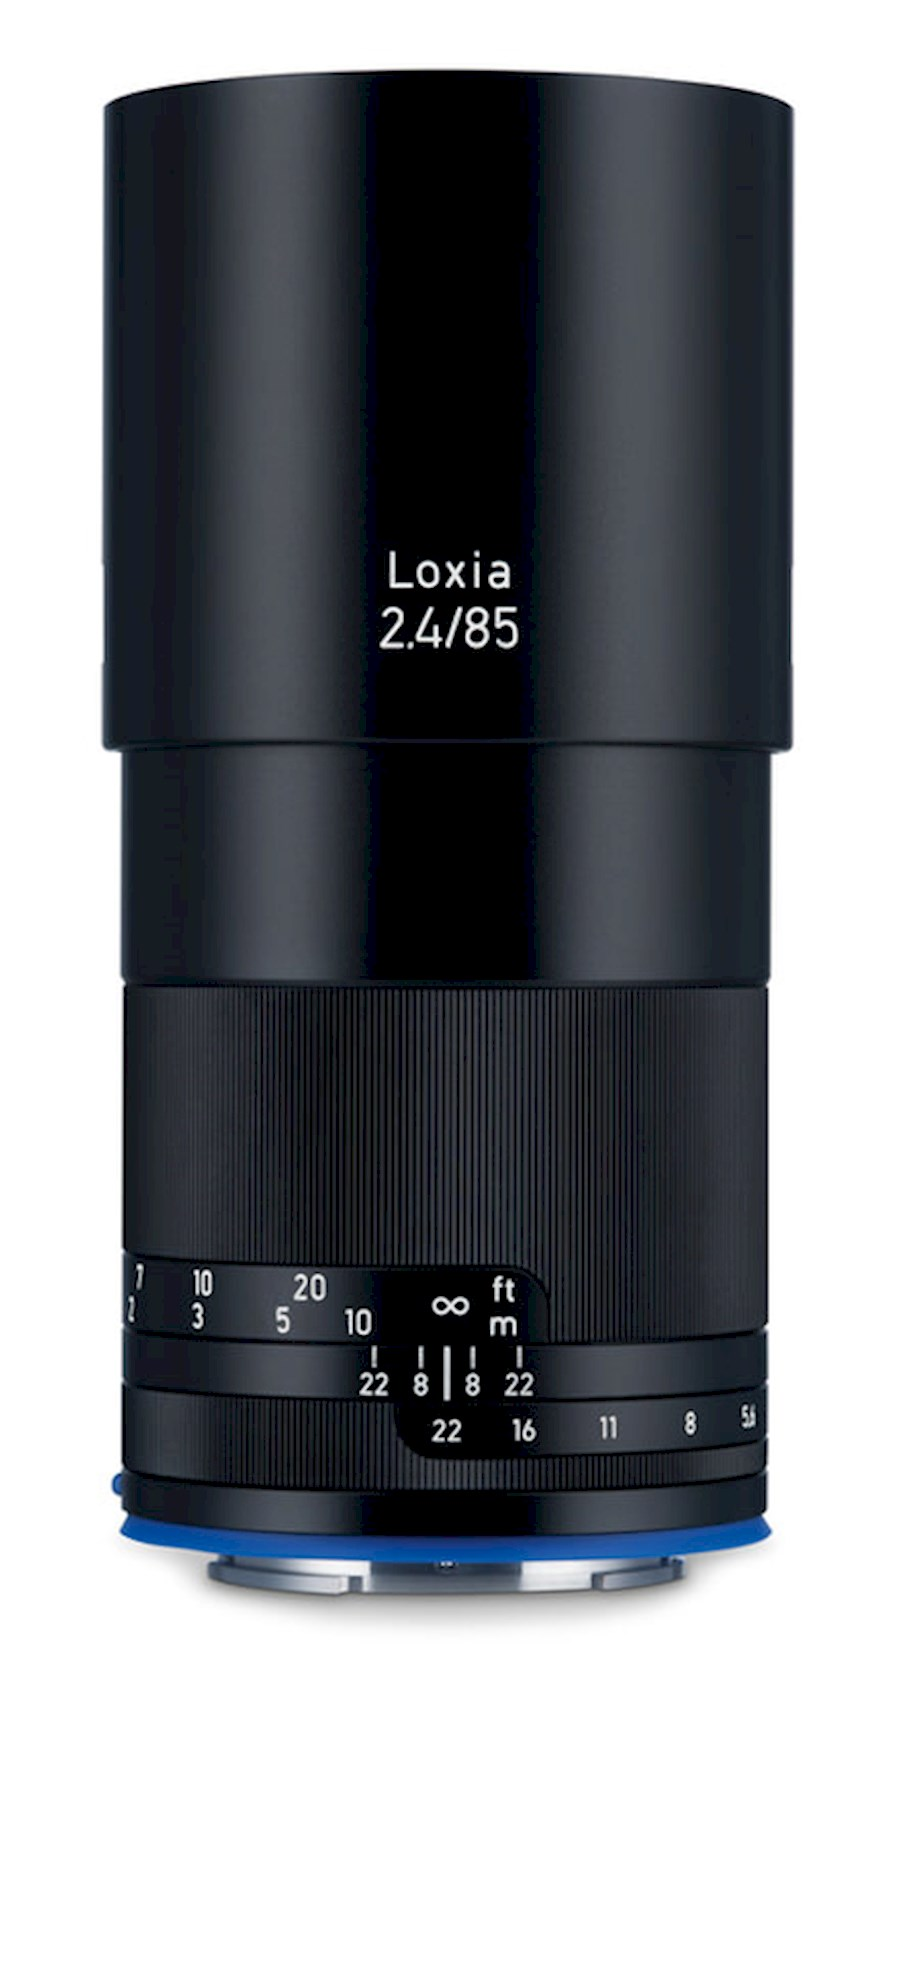 Rent a ZEISS Loxia 85 mm F2.4 | Sony E-mount in Nieuw-Vennep from TRANSCONTINENTA B.V.